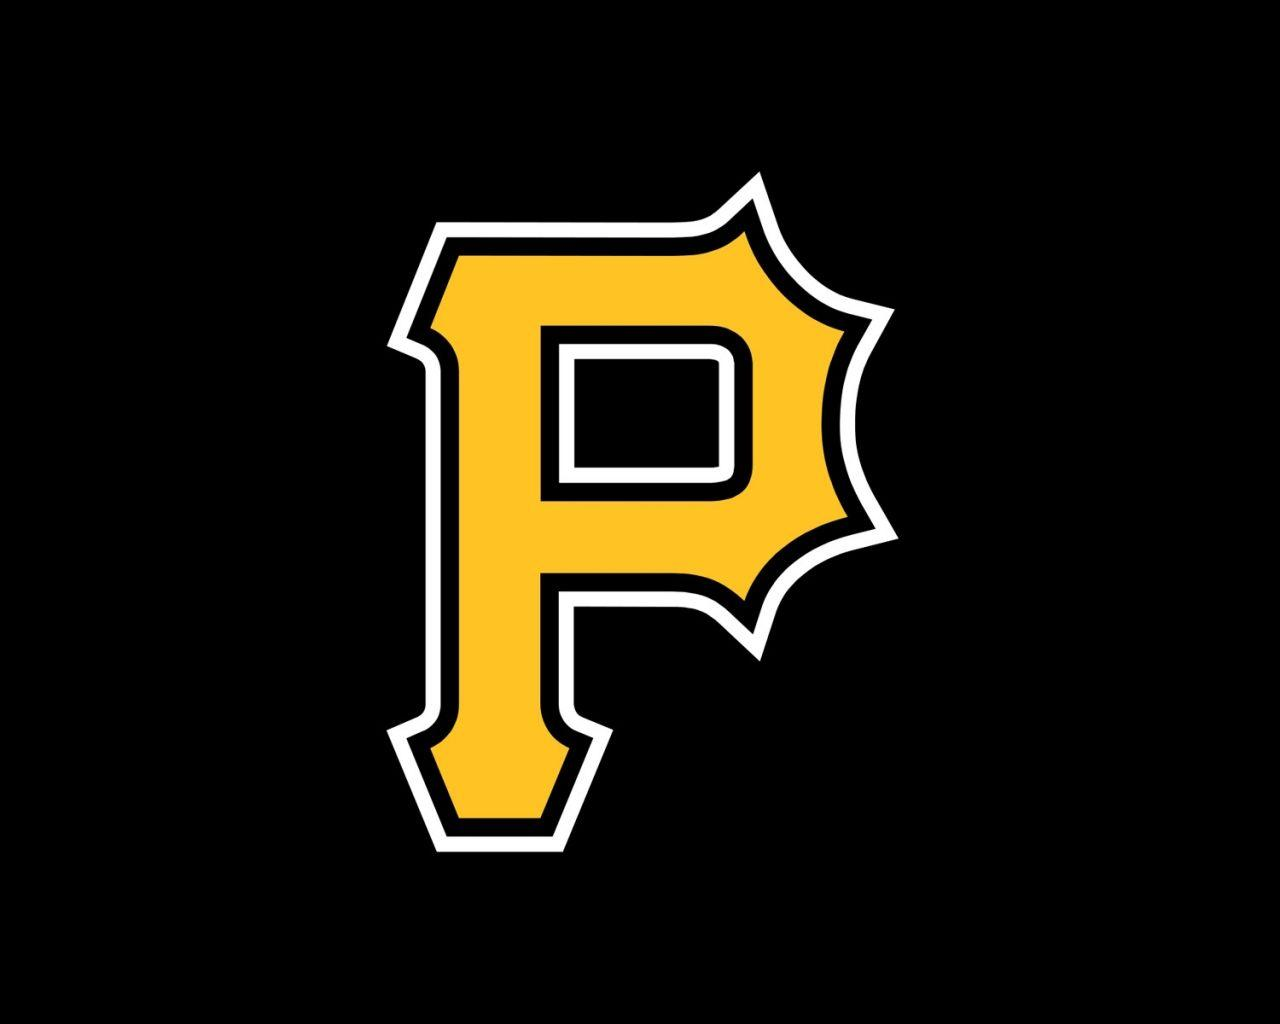 Pittsburgh Pirates Wallpaper | vidur.net